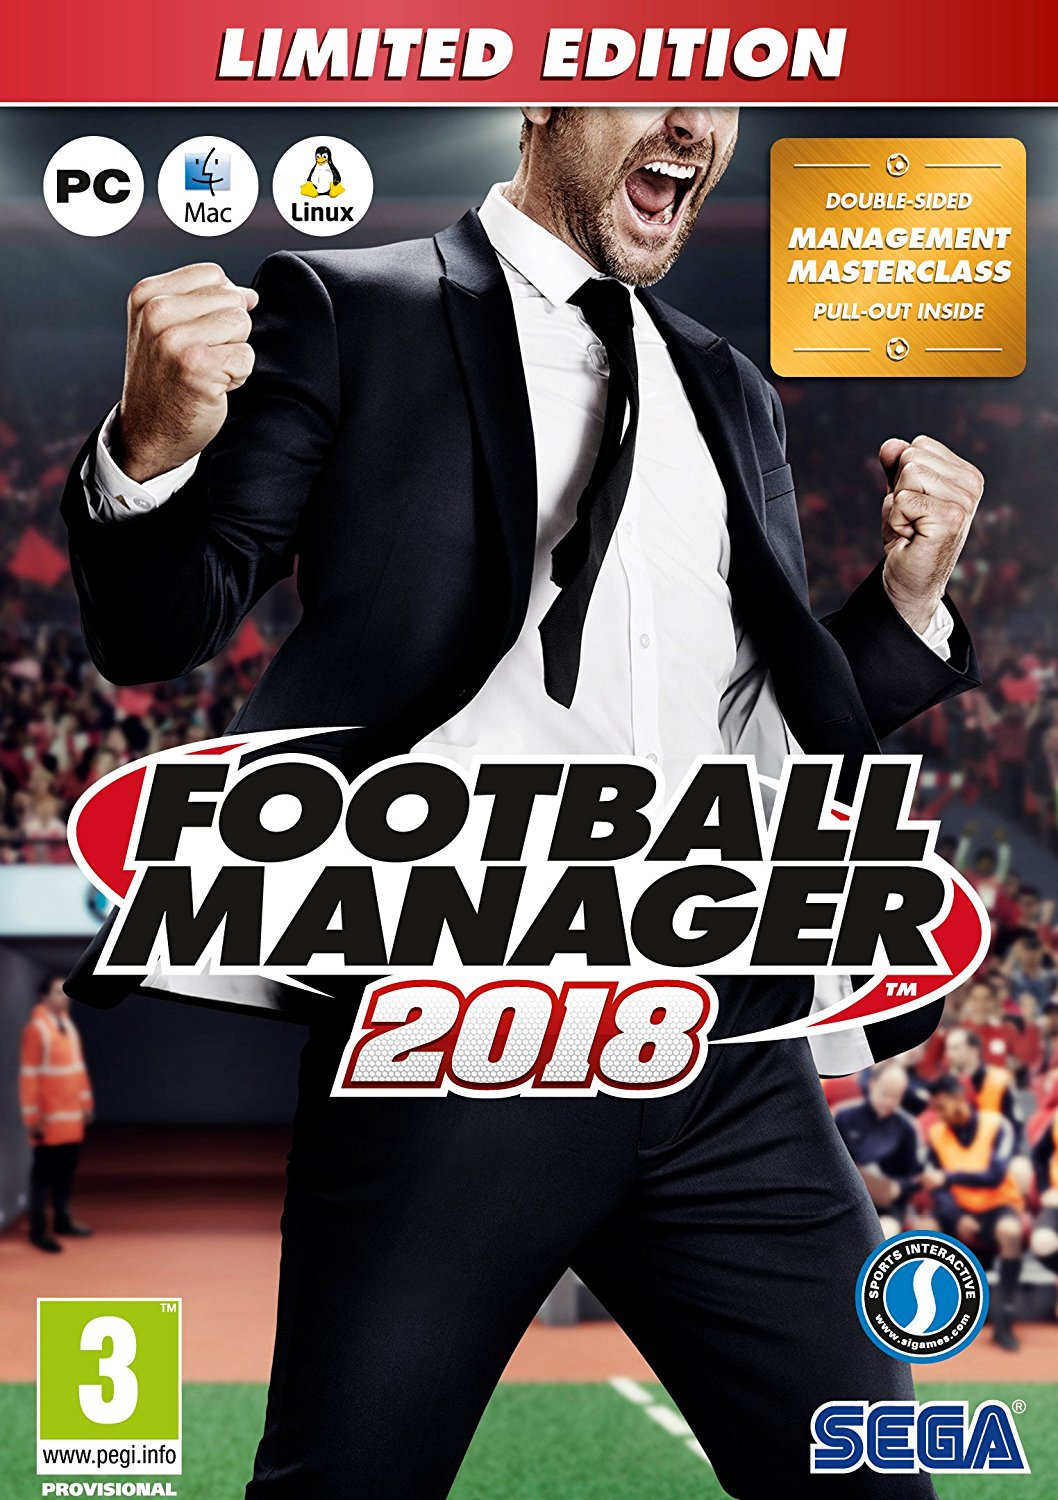 Football Manager 2018 - PC - Limited Edition